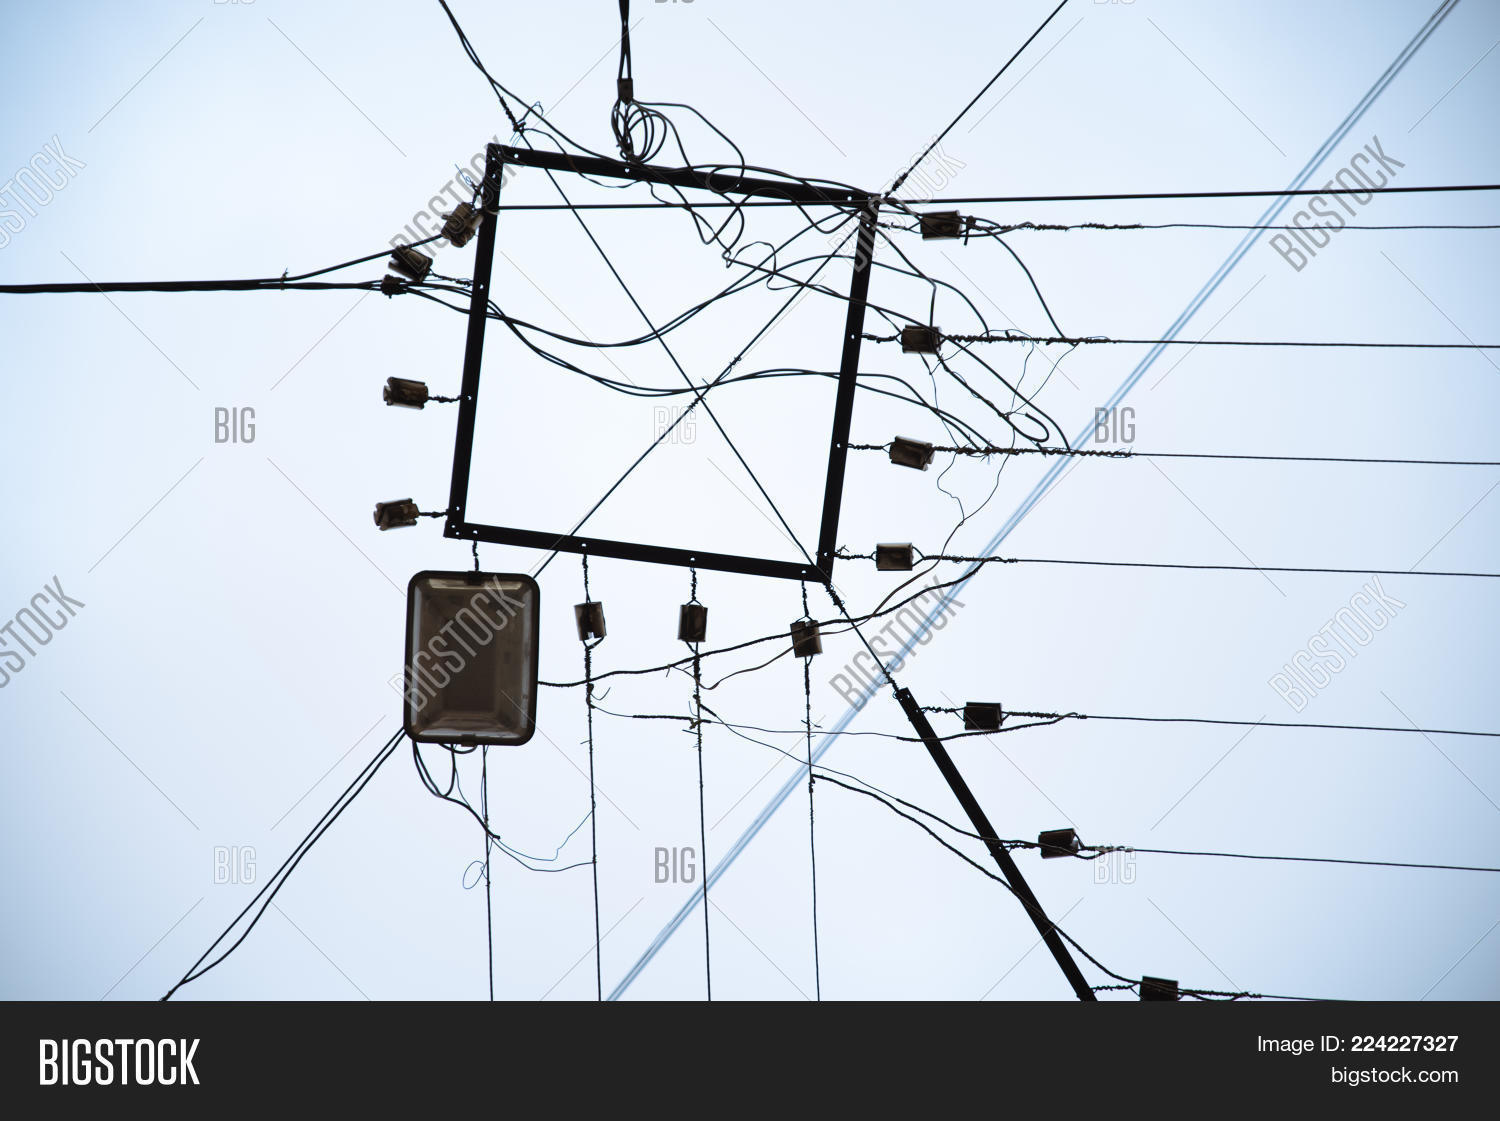 Electricity Wires Hub Image & Photo (Free Trial) | Bigstock